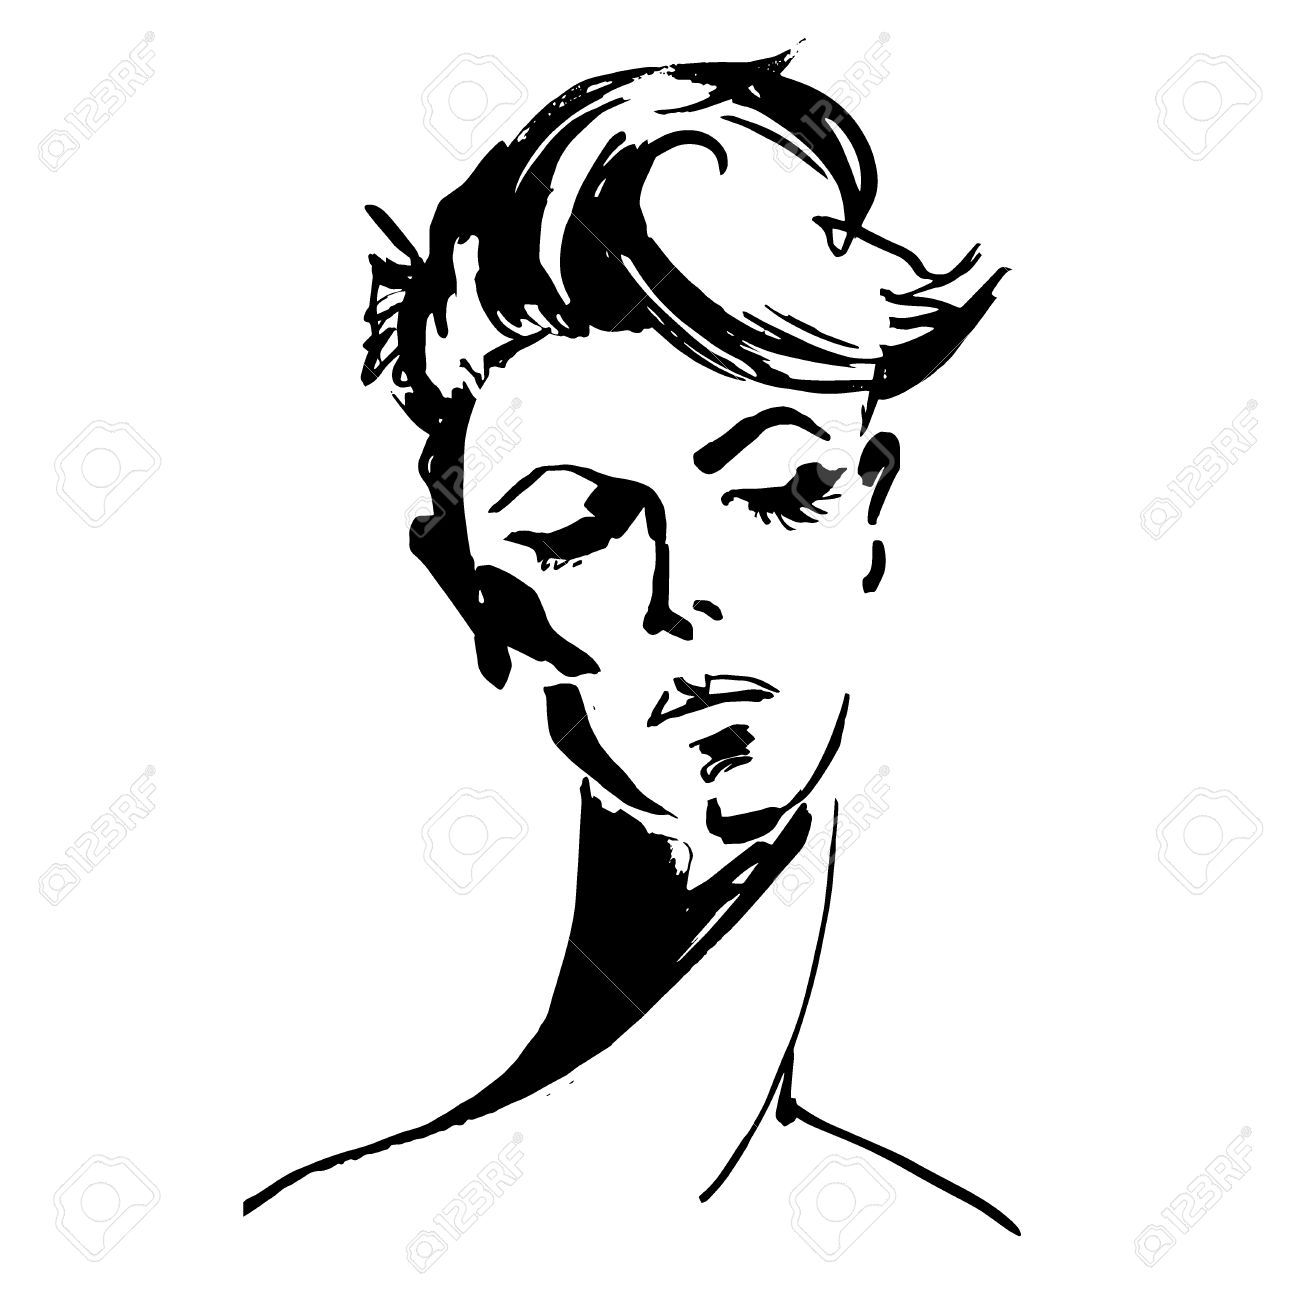 Sketch 1300x1300 close up portrait of young woman female face with short hair